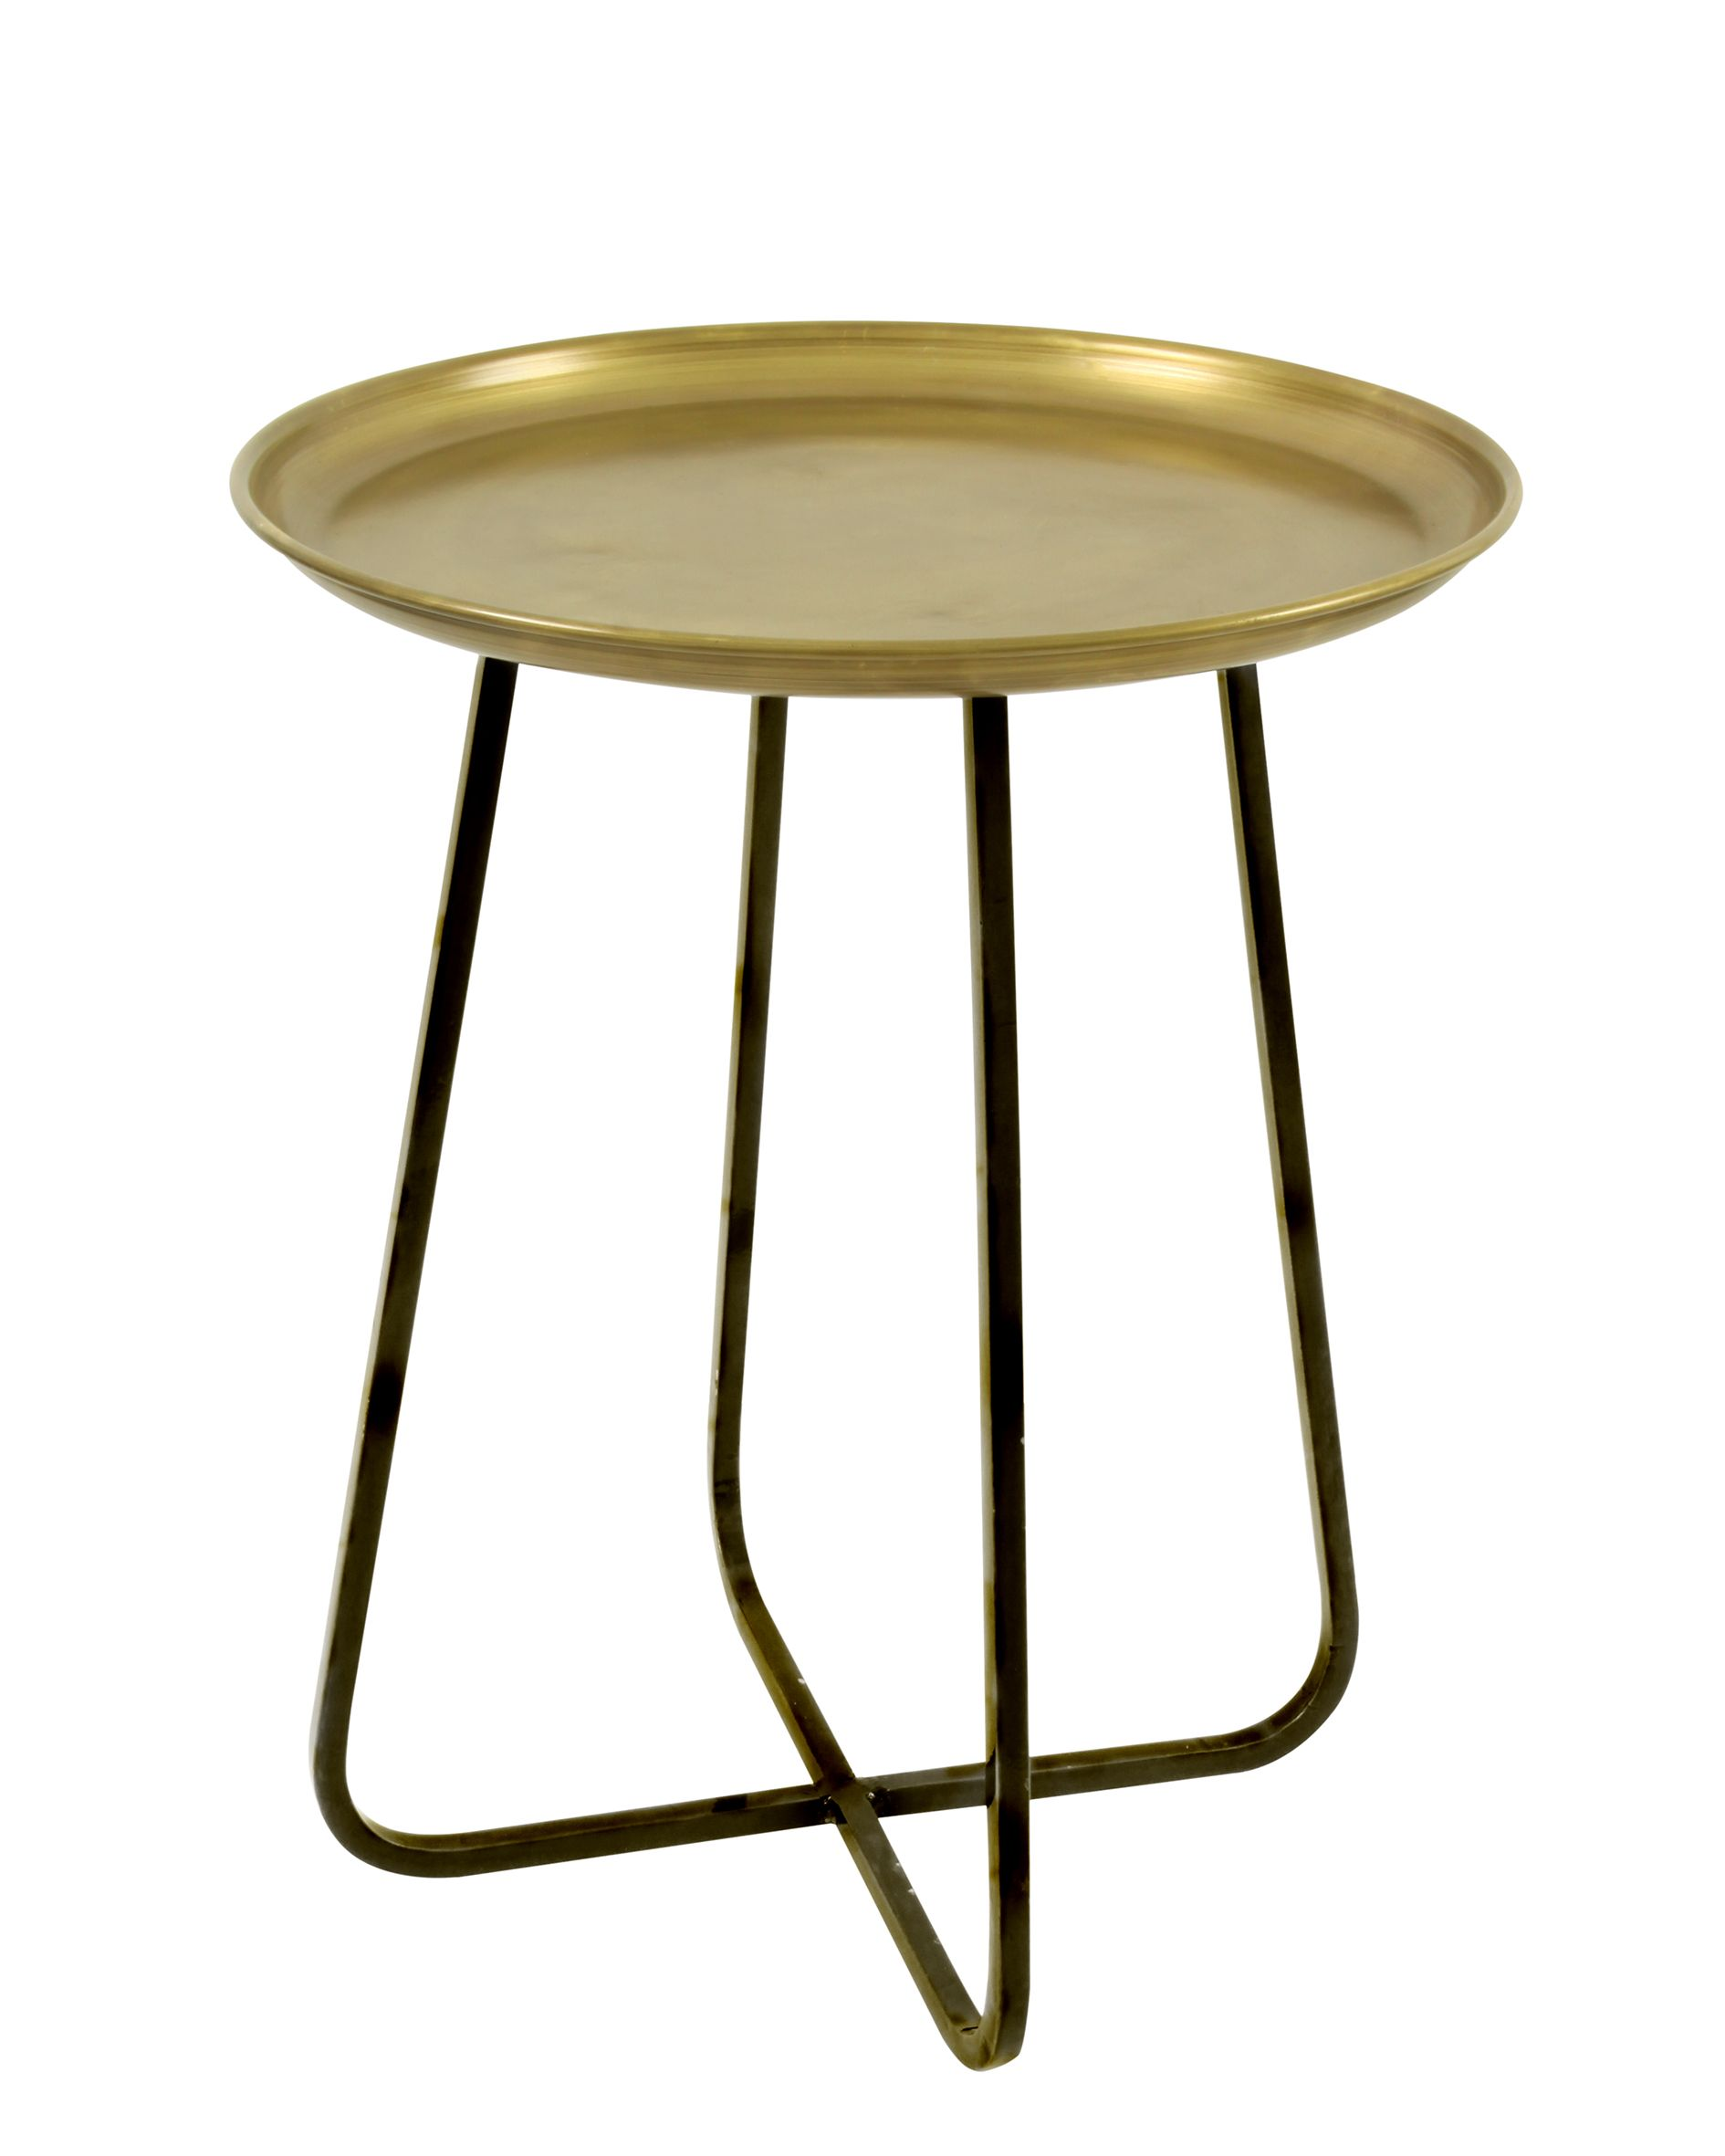 table twist cfs side online buy gold uk